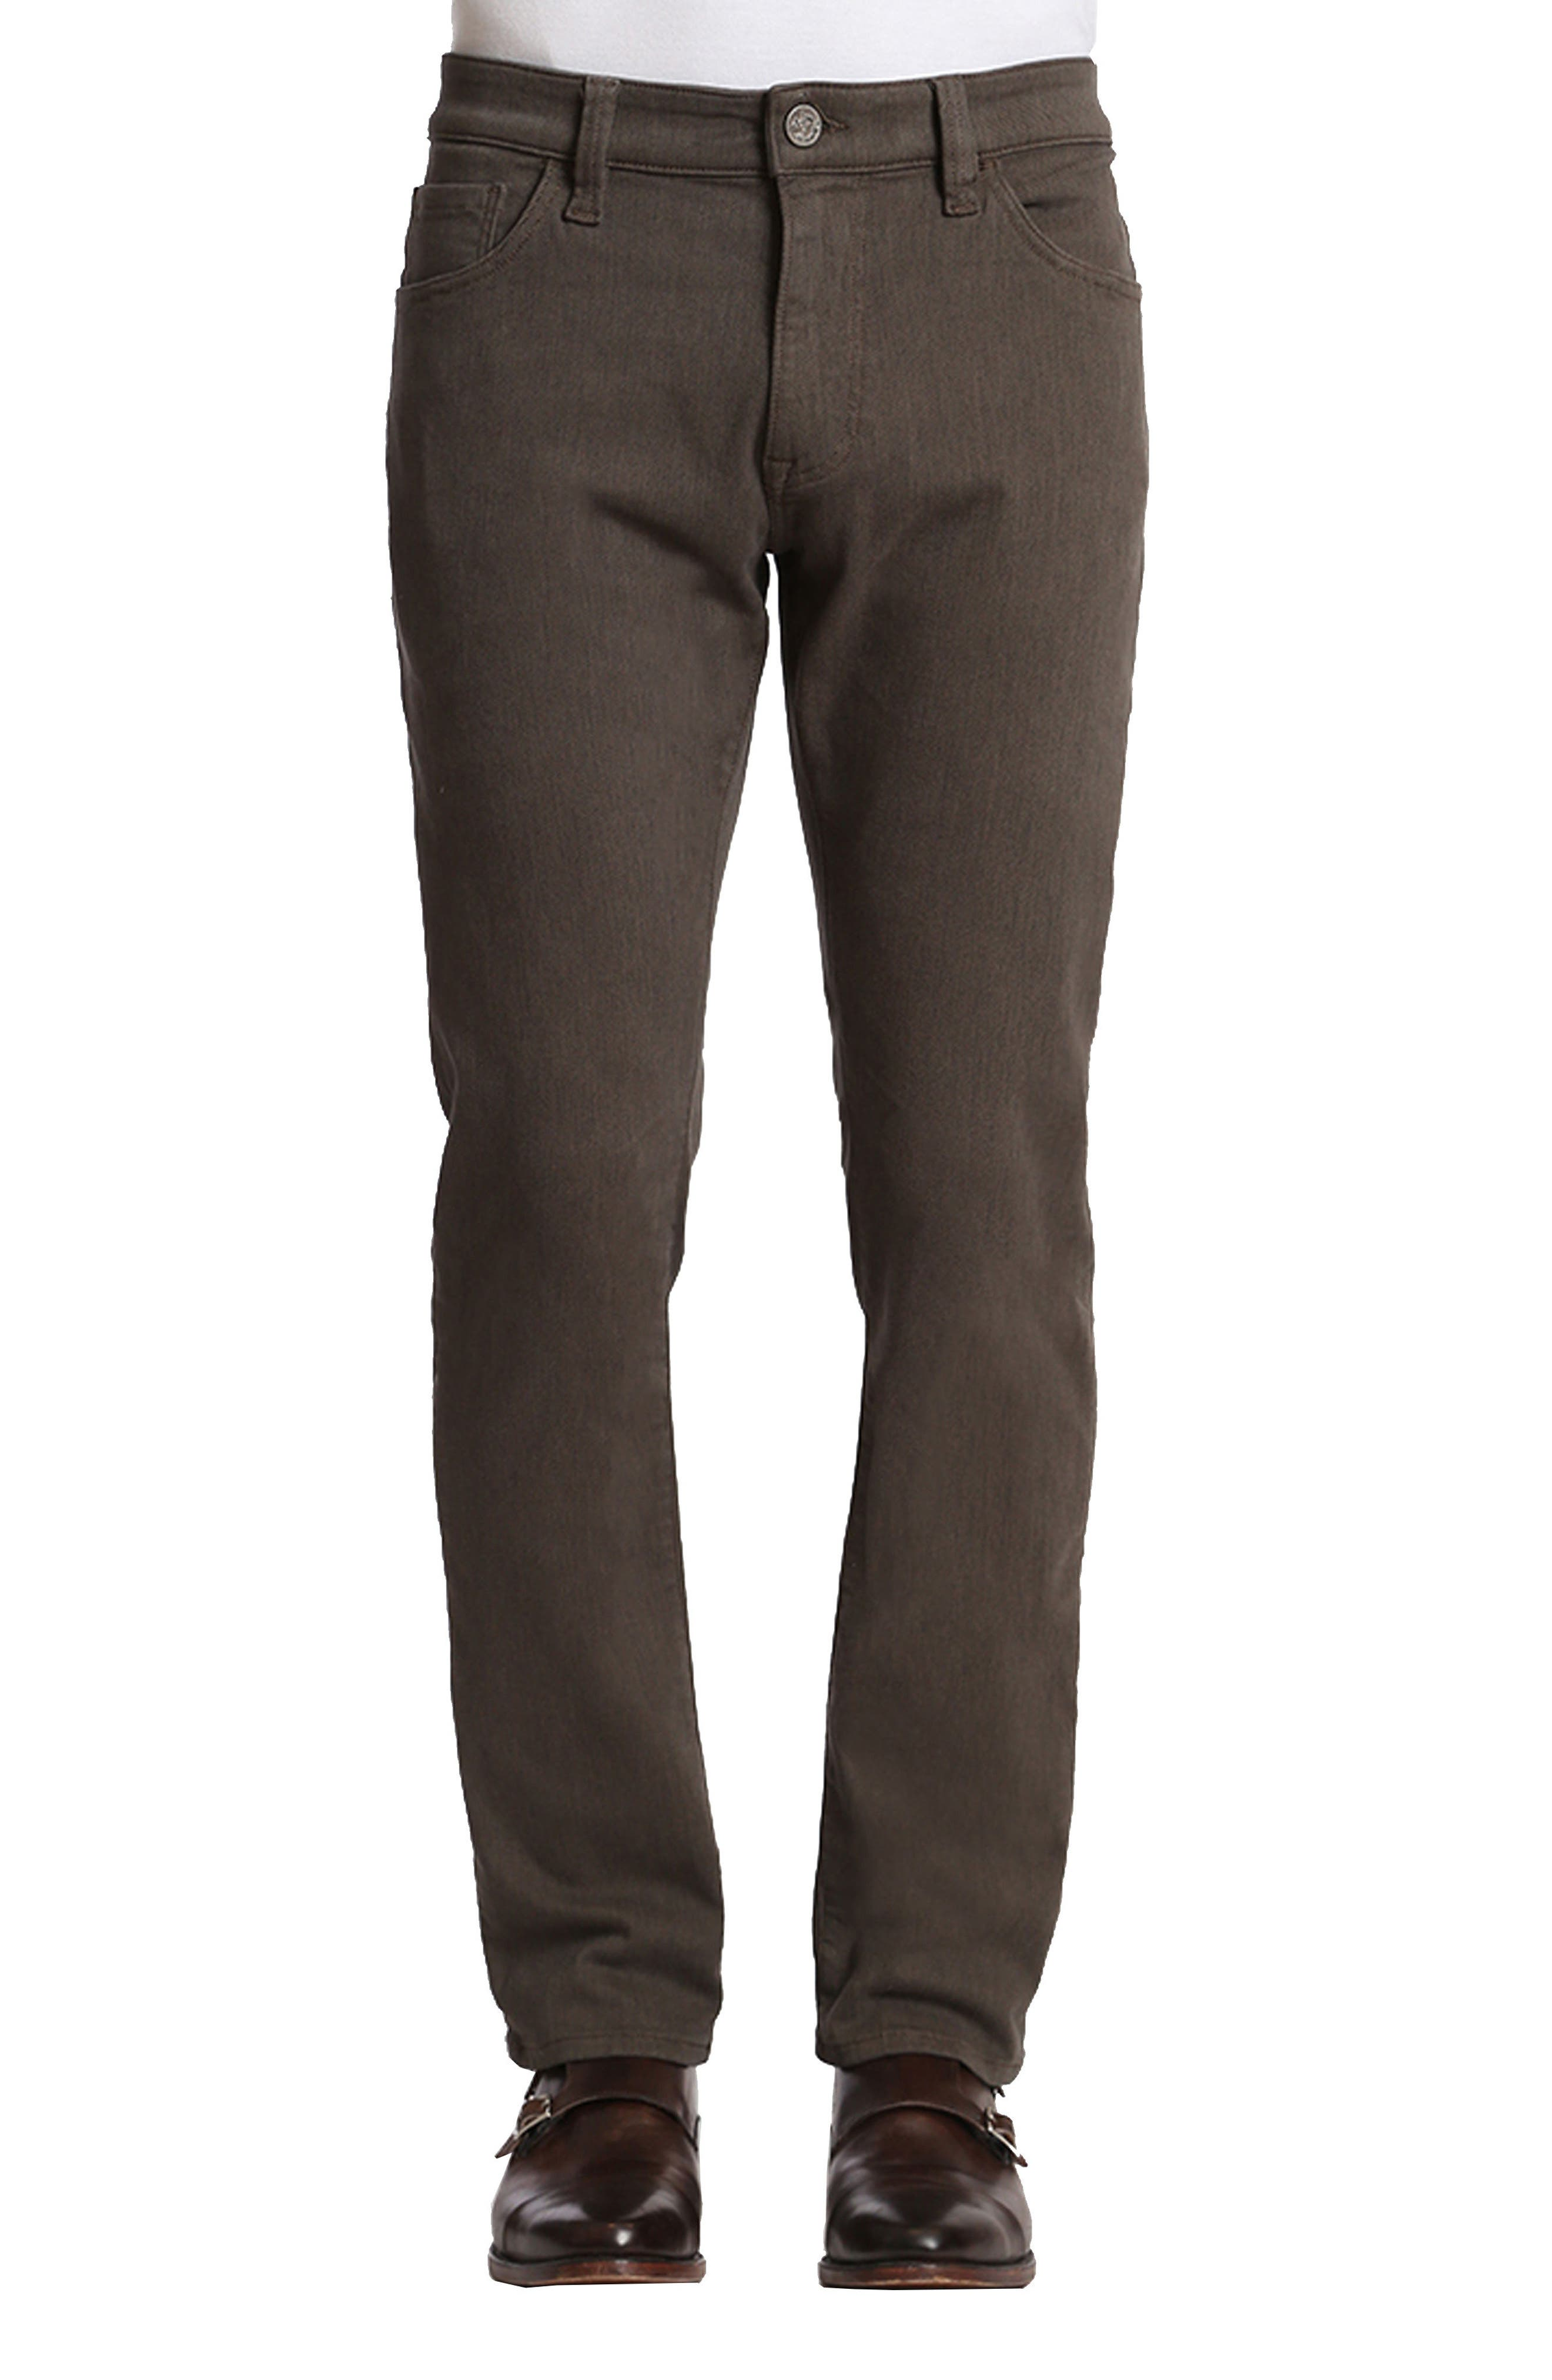 34 Heritage Charisma Relaxed Fit Jeans (Taupe Diagonal)